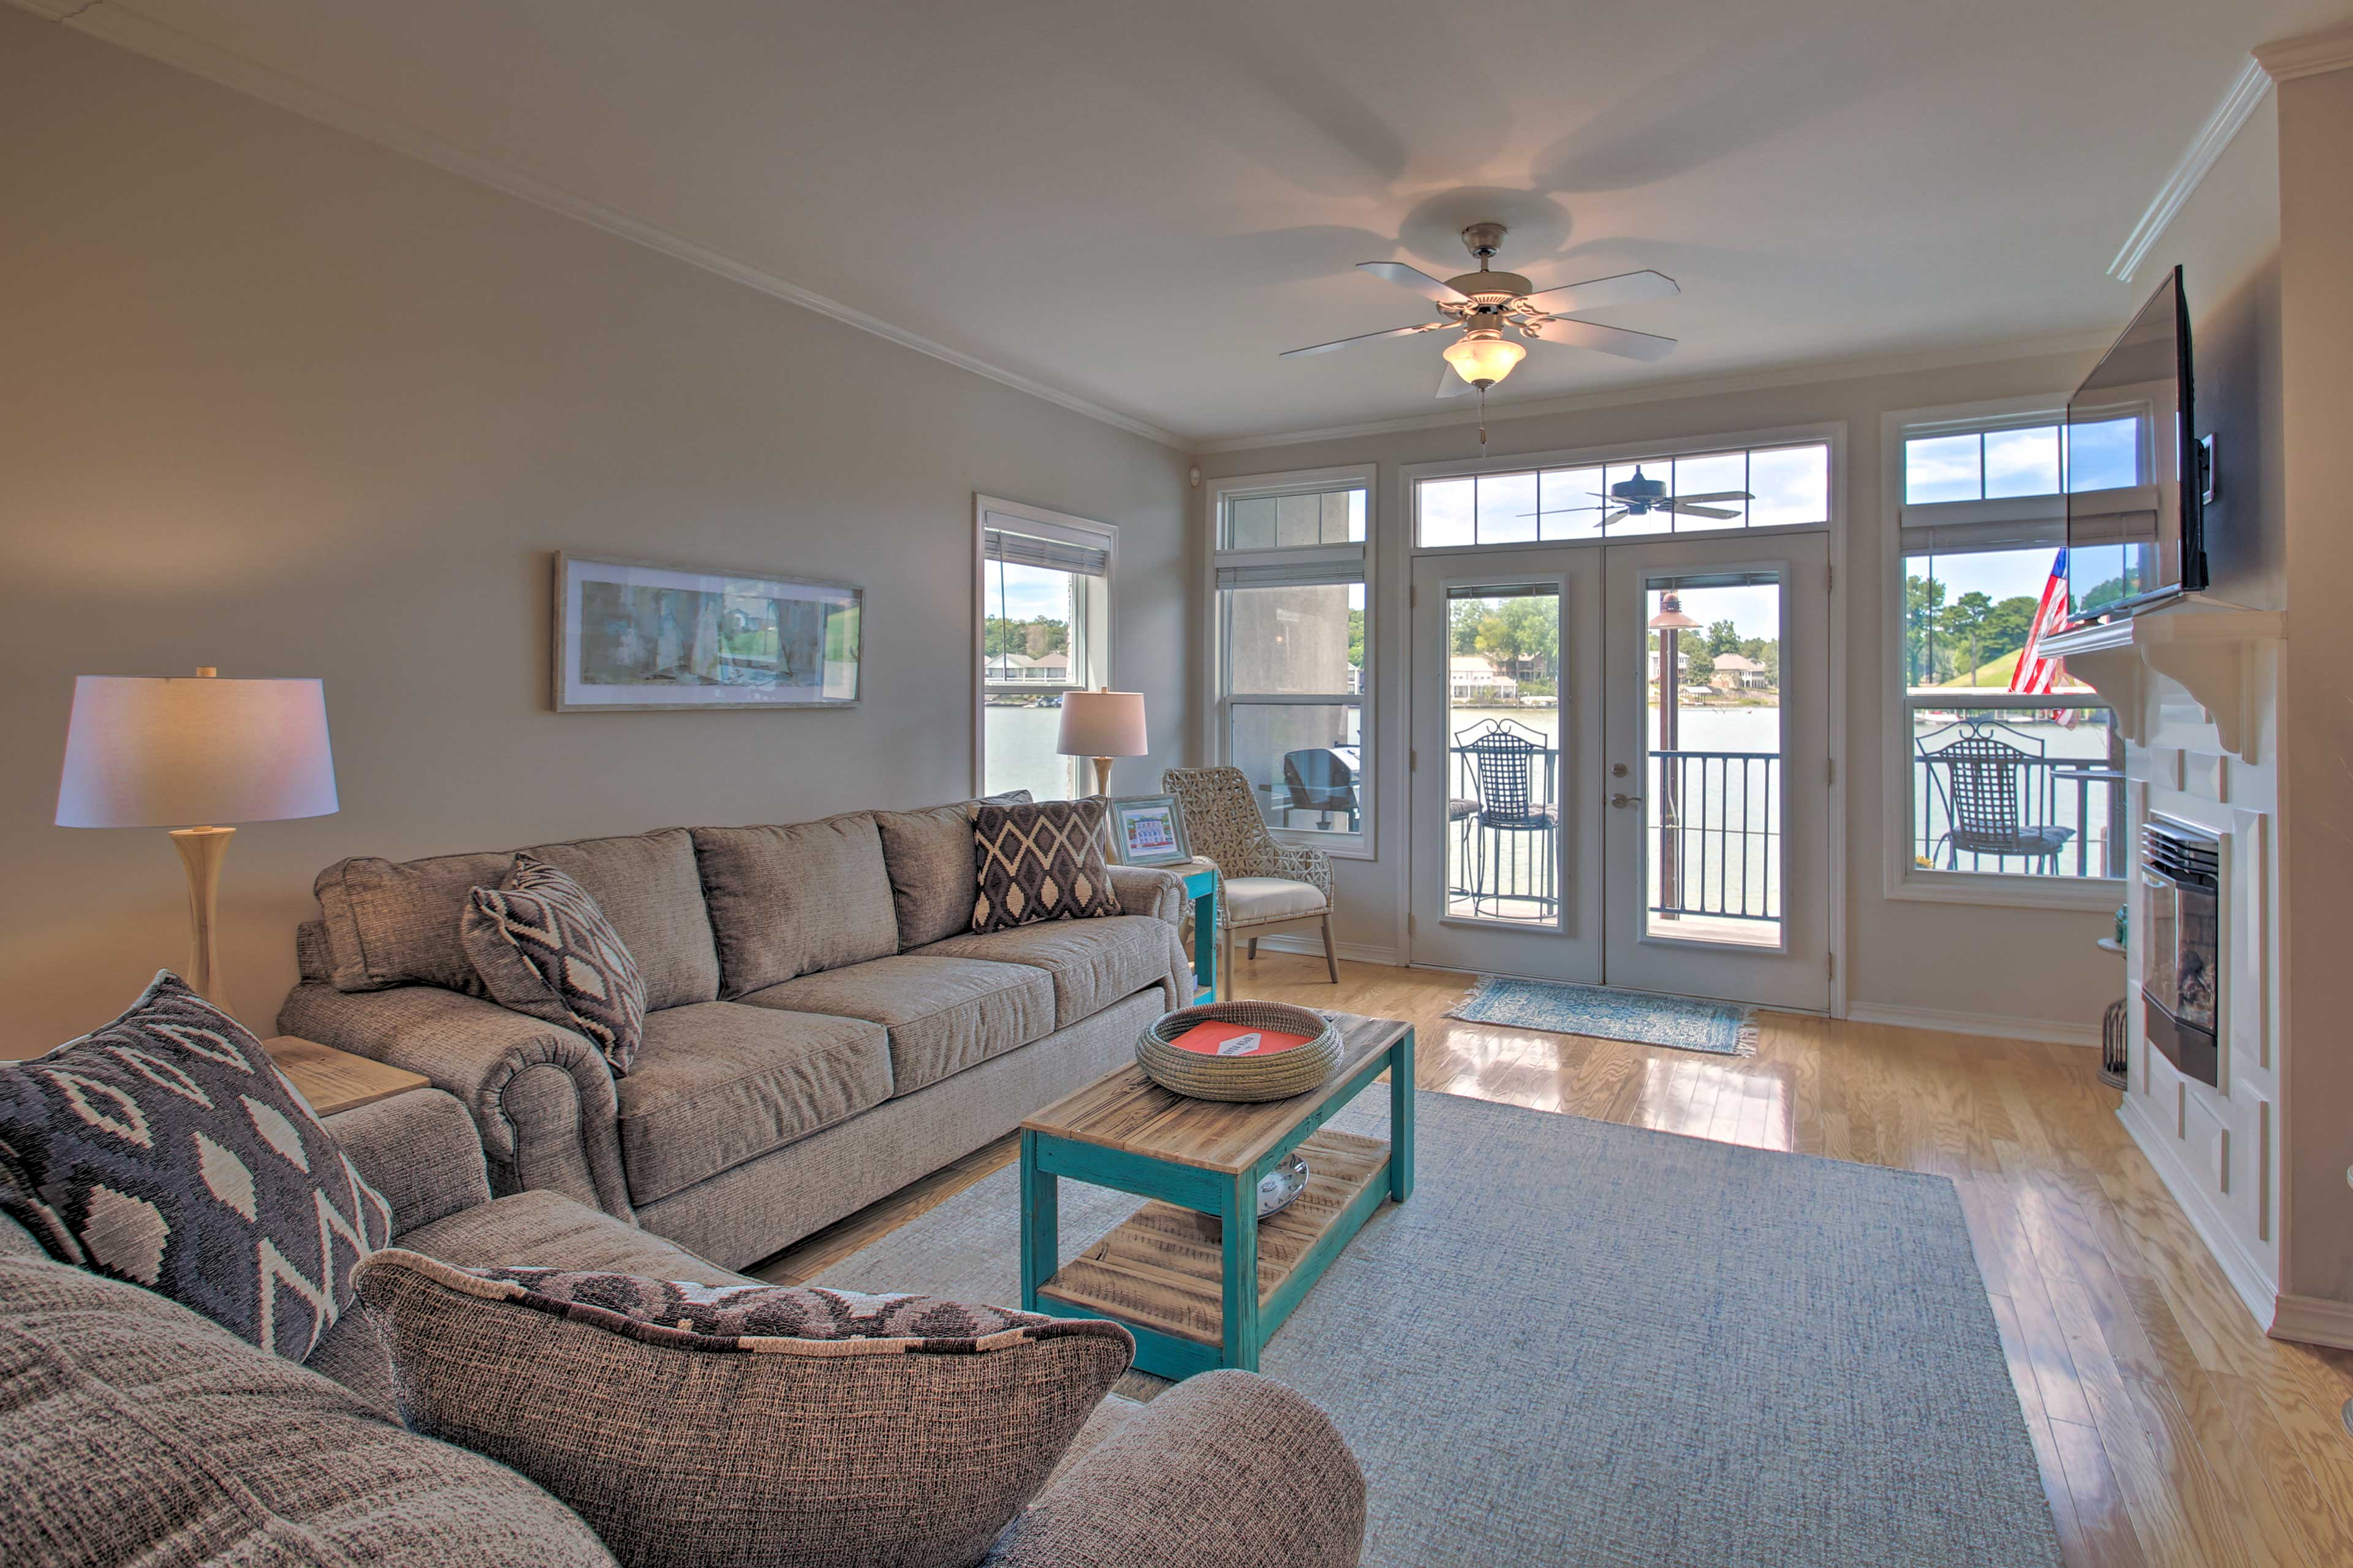 Unwind in the bright living room and watch TV.